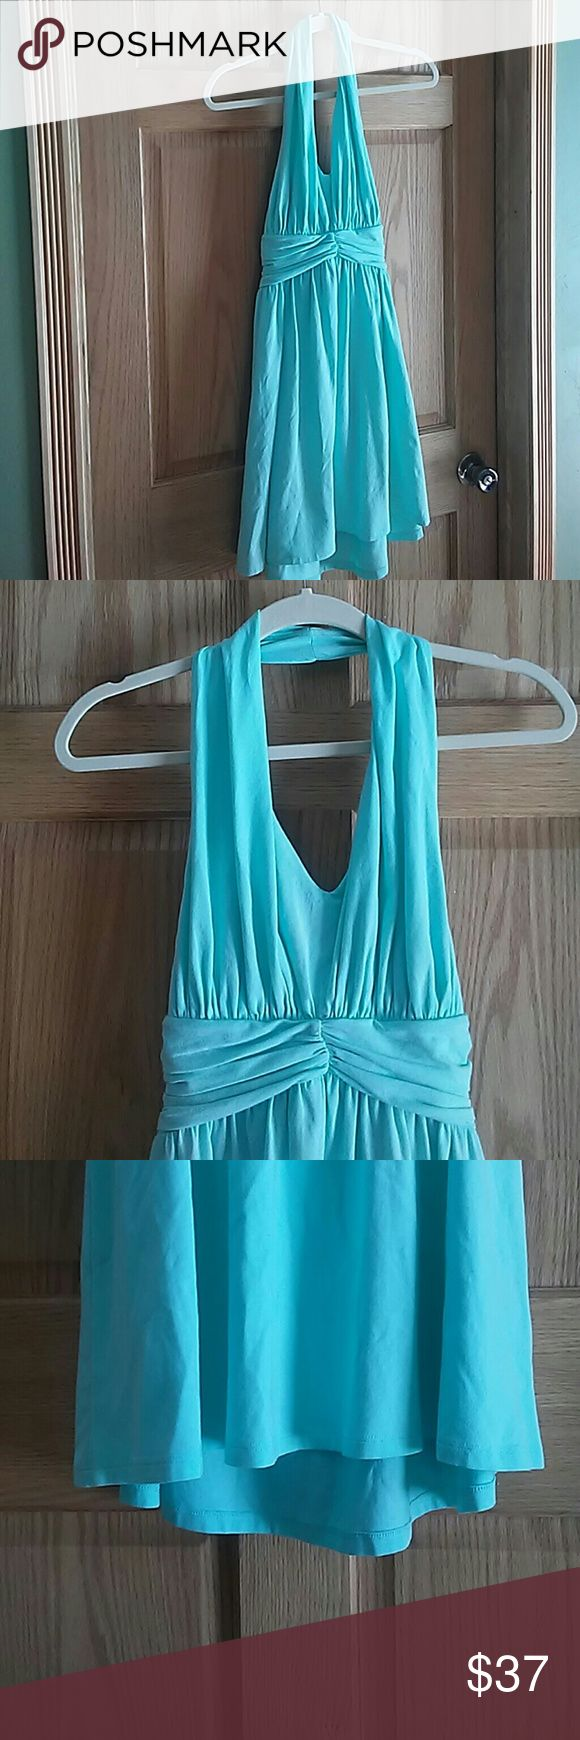 Express hater top mint color dress NWT Hard to get the color of this dress in a photo but its a beautiful mint color. The back of the dress is a little longer then the front. Great for a graduation dress! Express Dresses